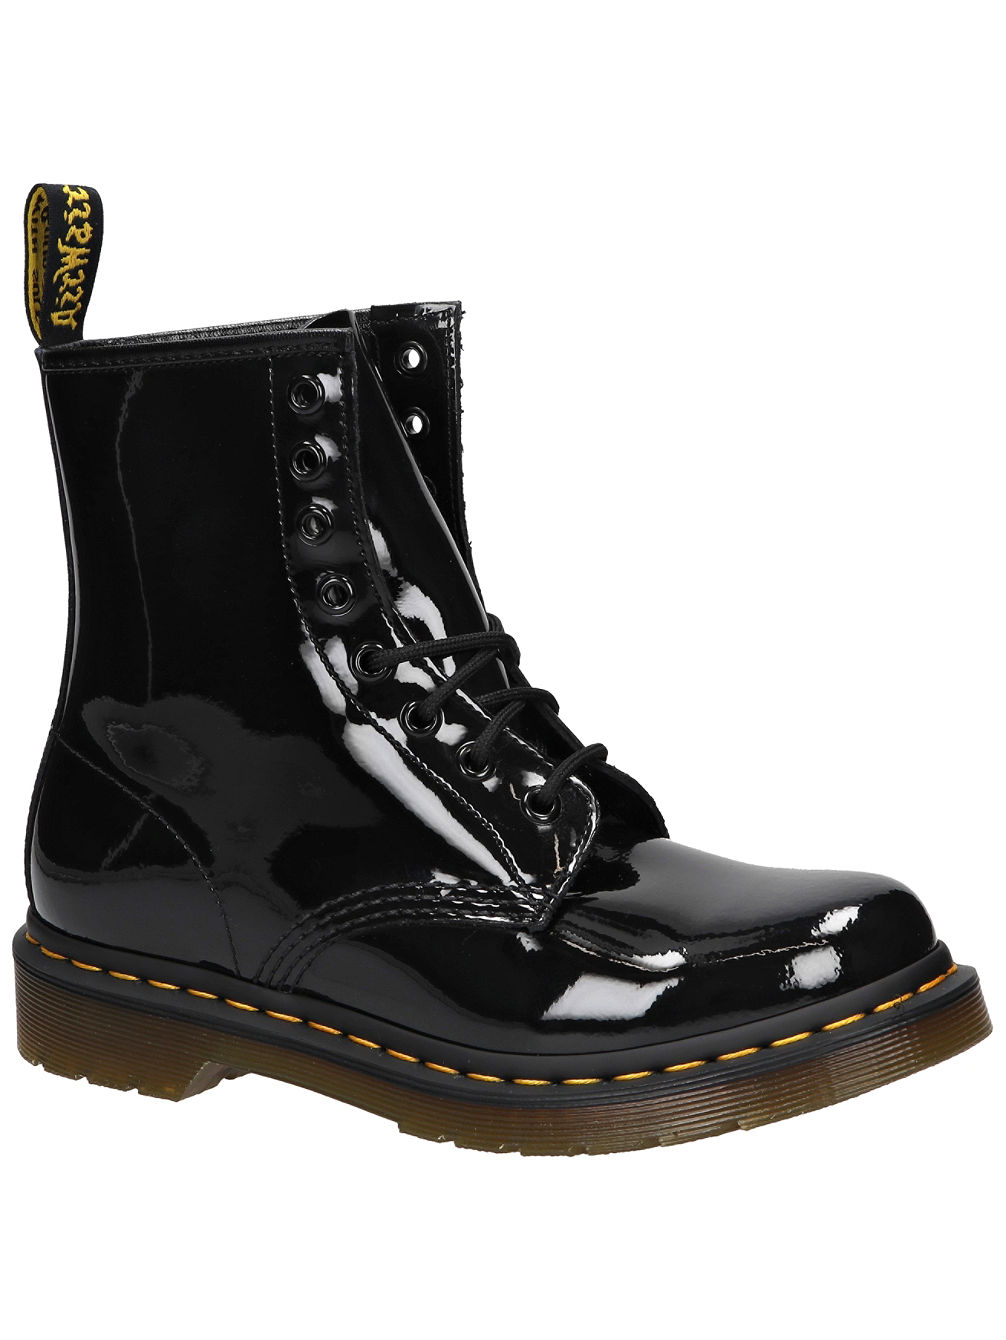 1460 Patent 8 Eye Boots Women